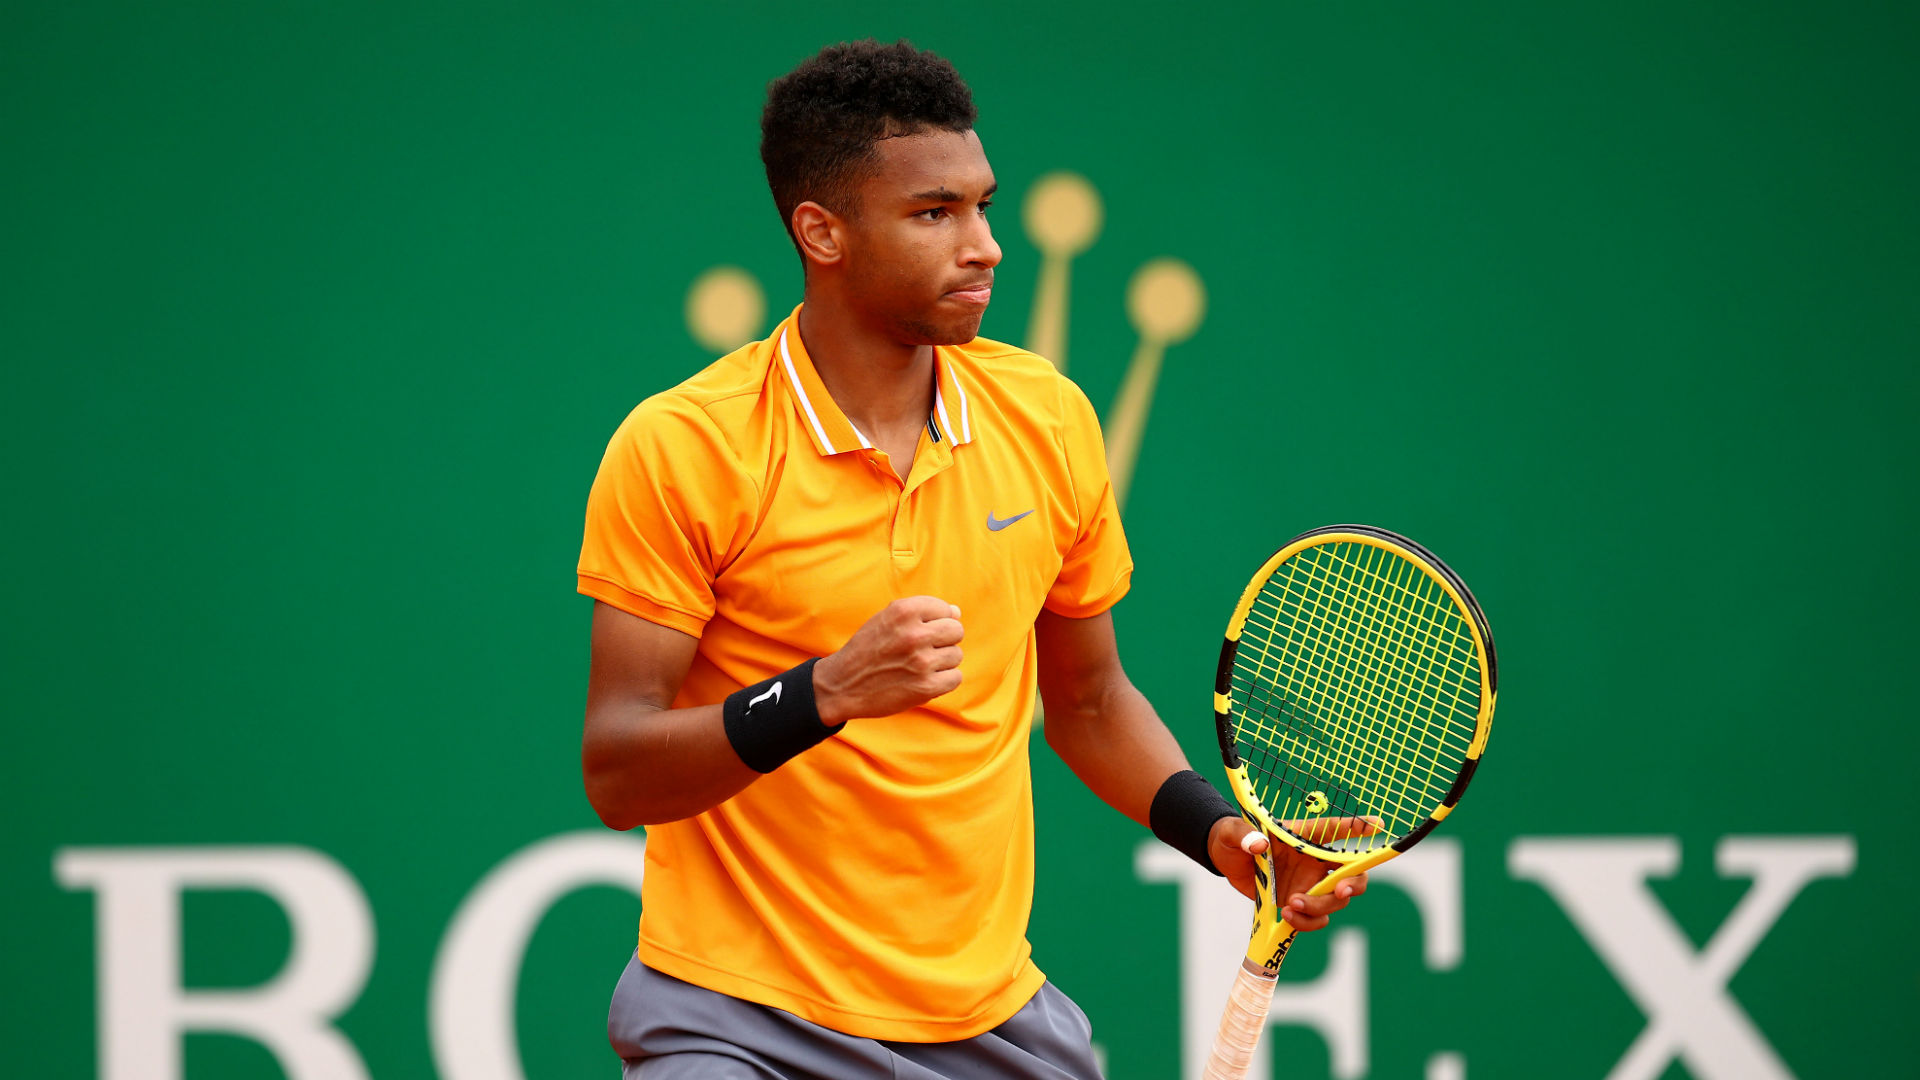 Monte-Carlo Masters 2019: Felix Auger-Aliassime wins opening round, set to face World No. 3 Alexander Zverev